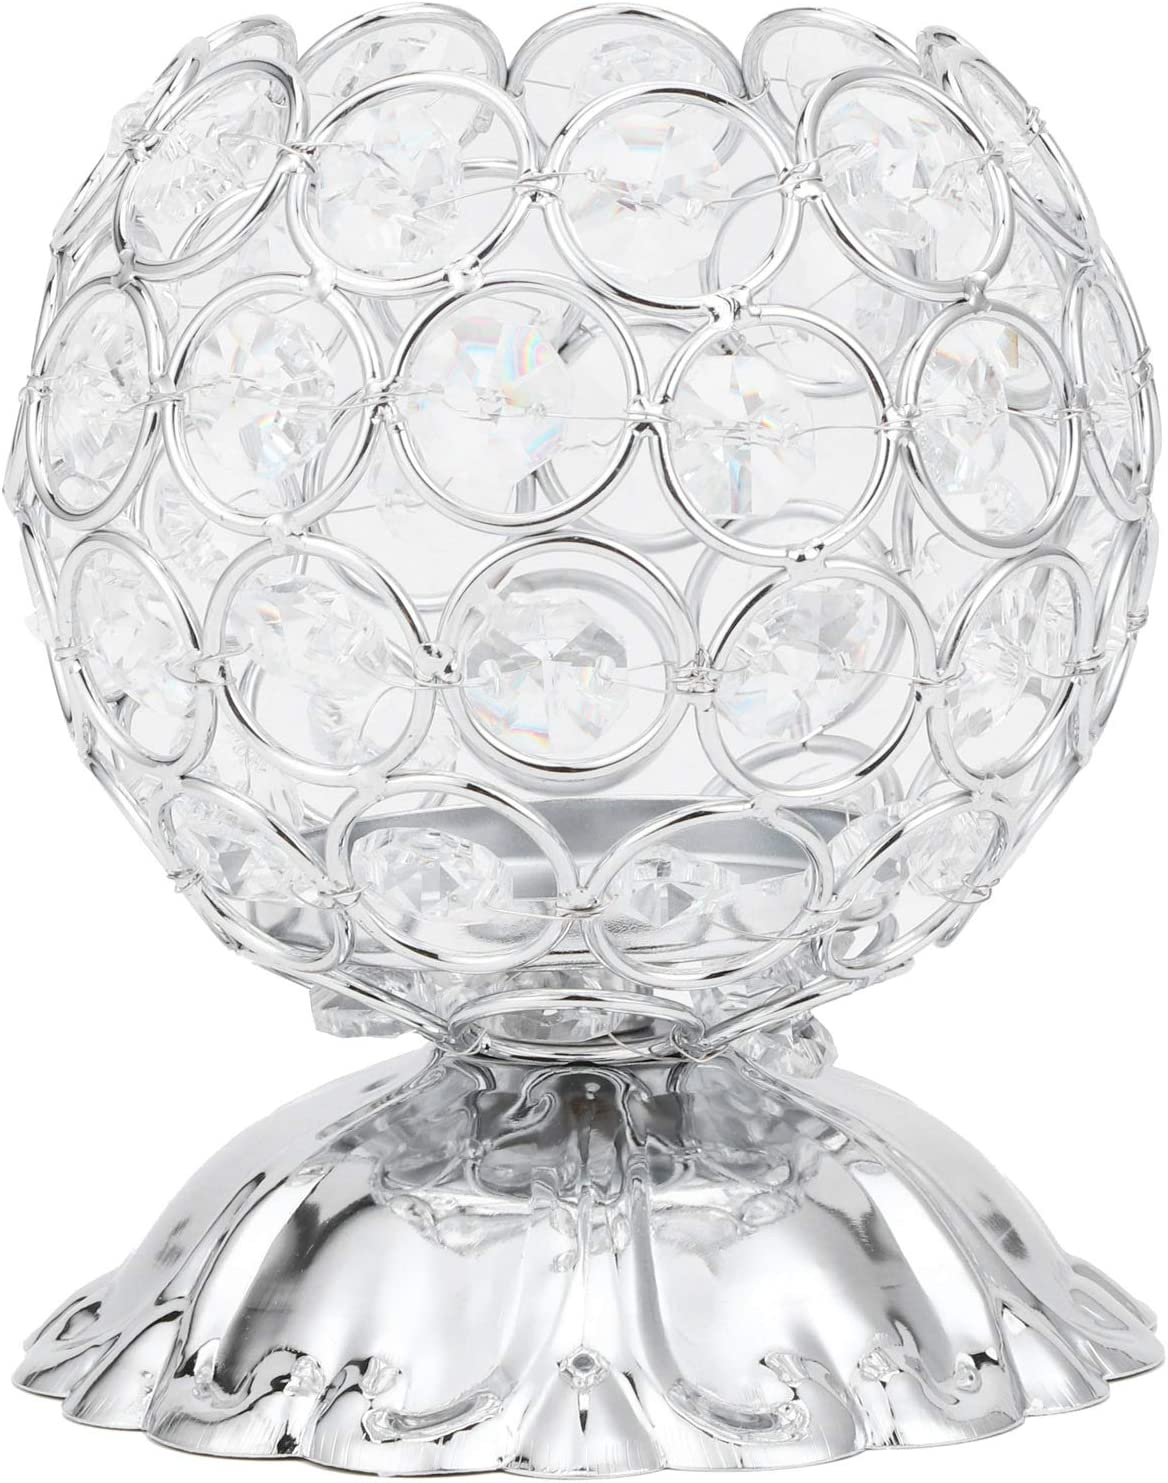 SanZHONGsd Silver Crystal Candle Holder Cand electroplated Inventory NEW cleanup selling sale Iron